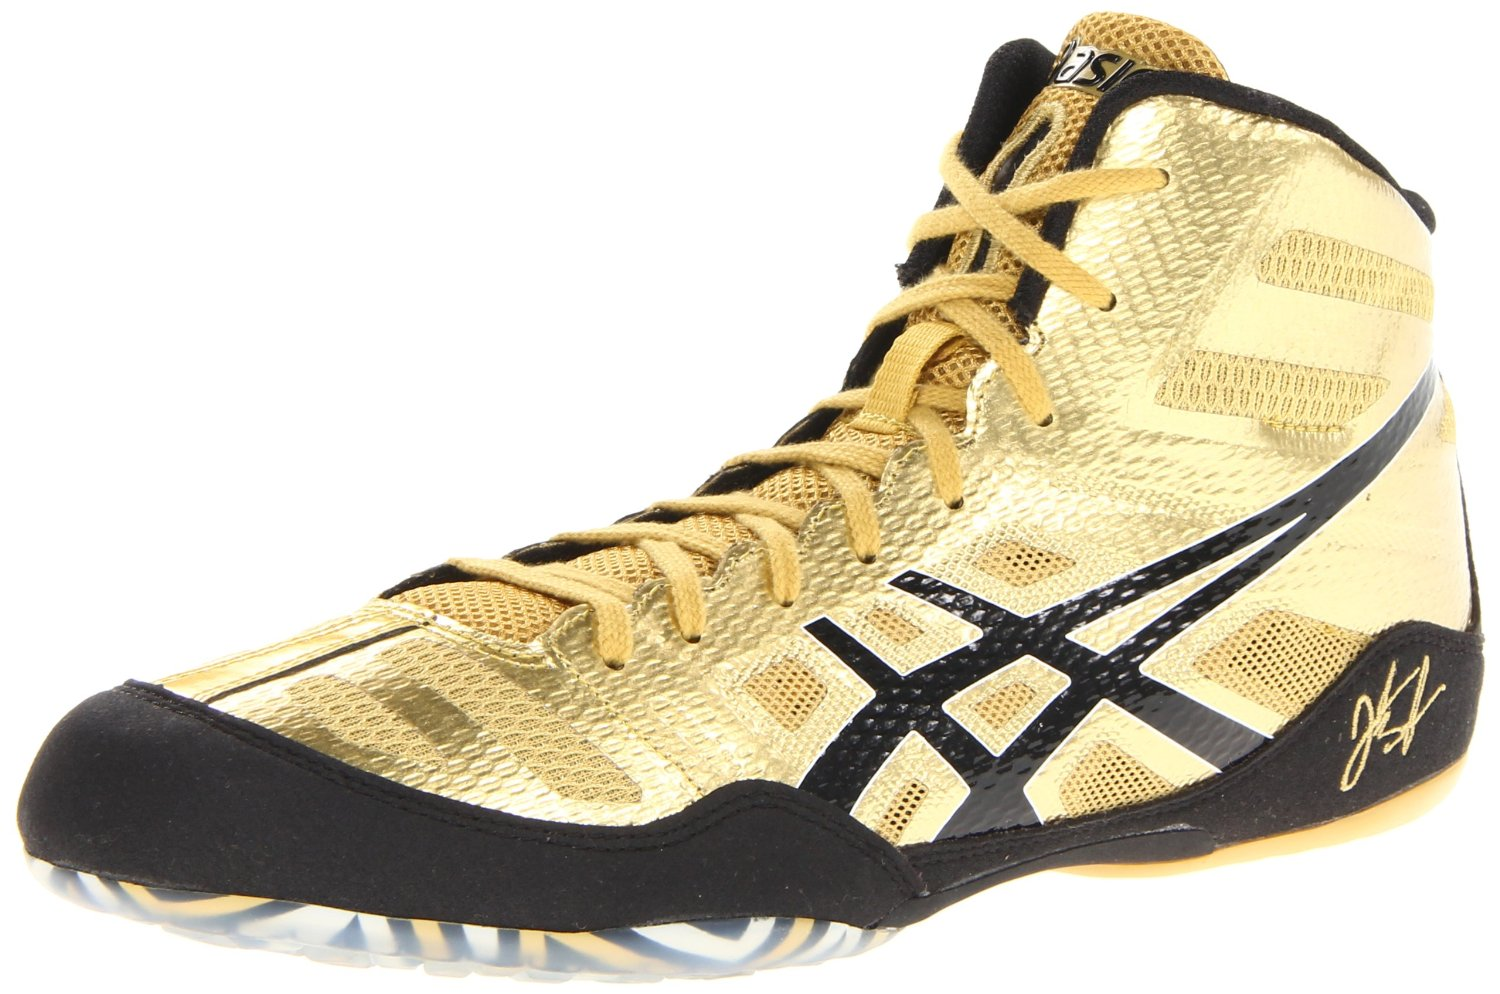 963dde74d9c9 Asics - Mens Jb Elite Shoes